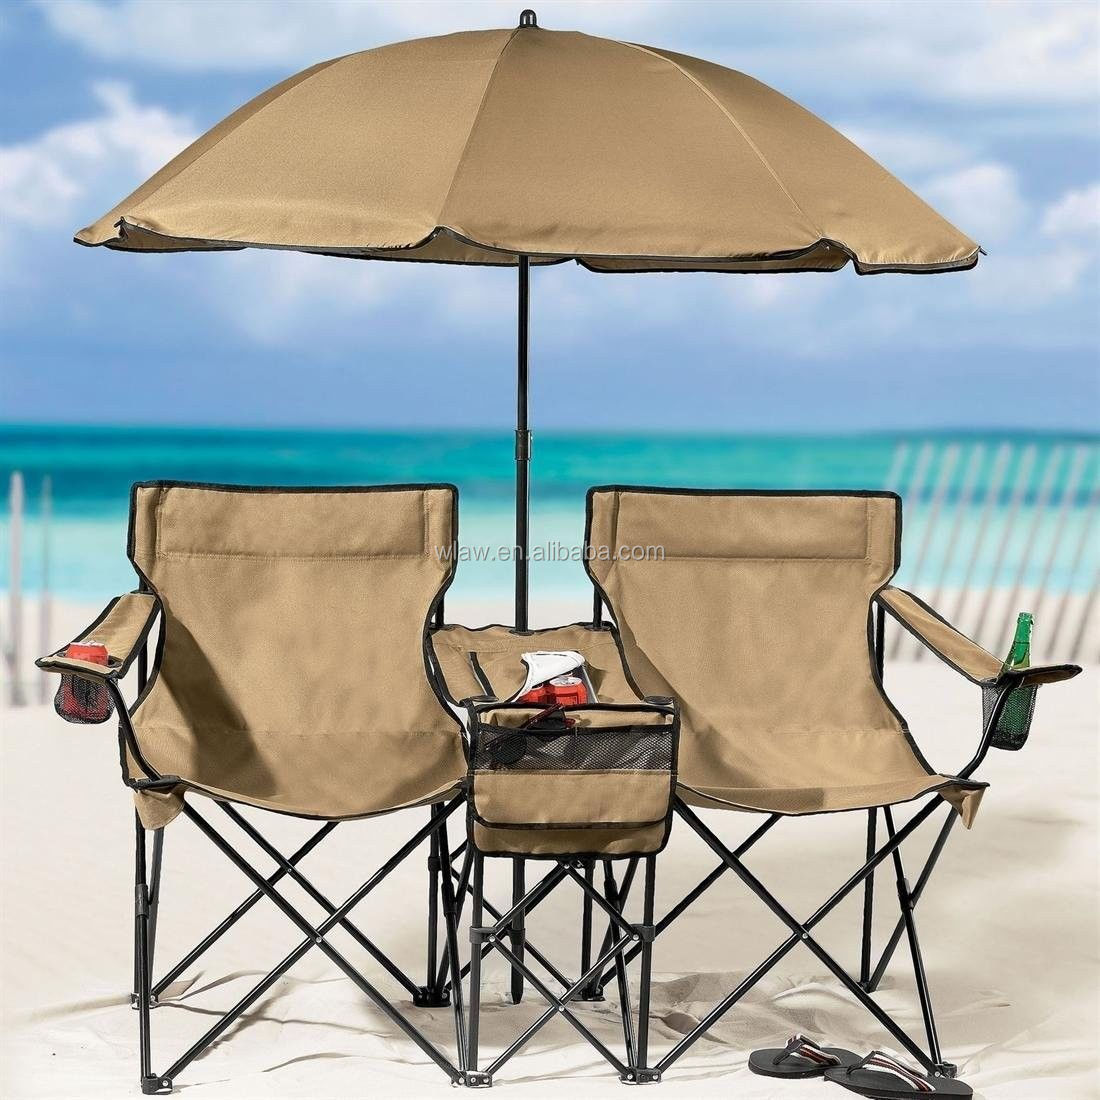 Umbrella Chair Beach Double Chair With Cooler Table And Umbrella Buy